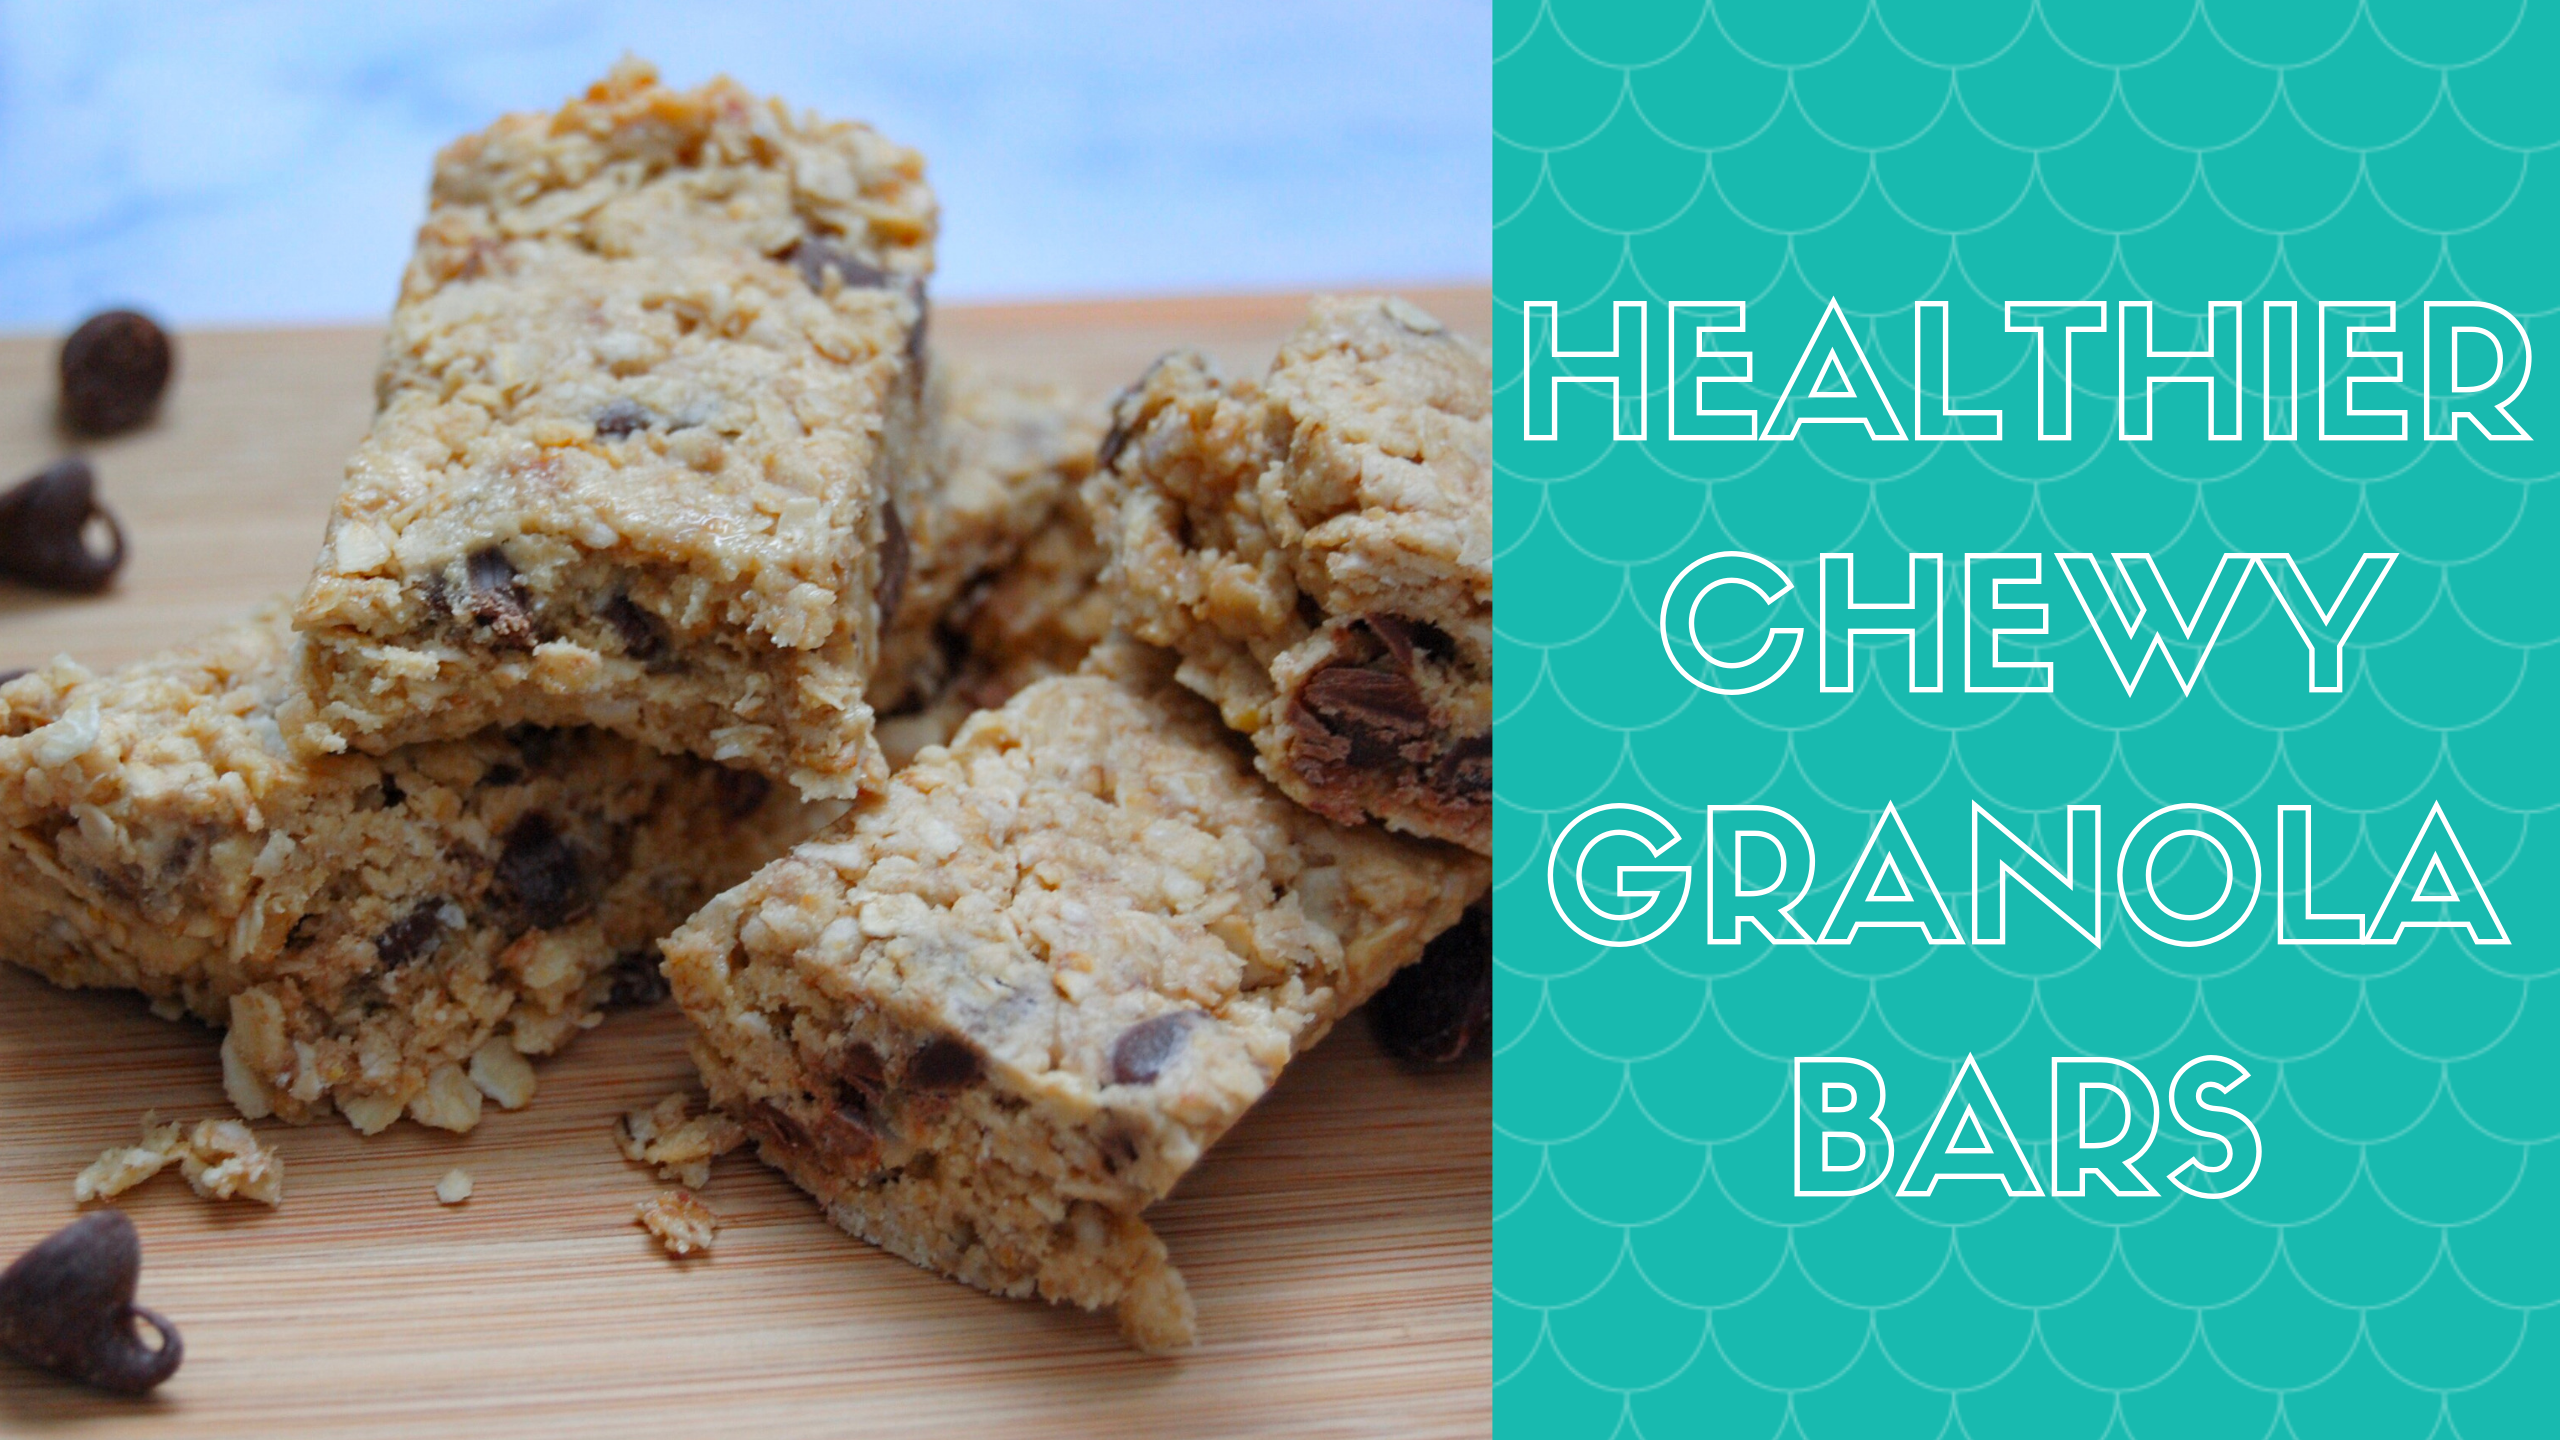 healthier chewy granola bars